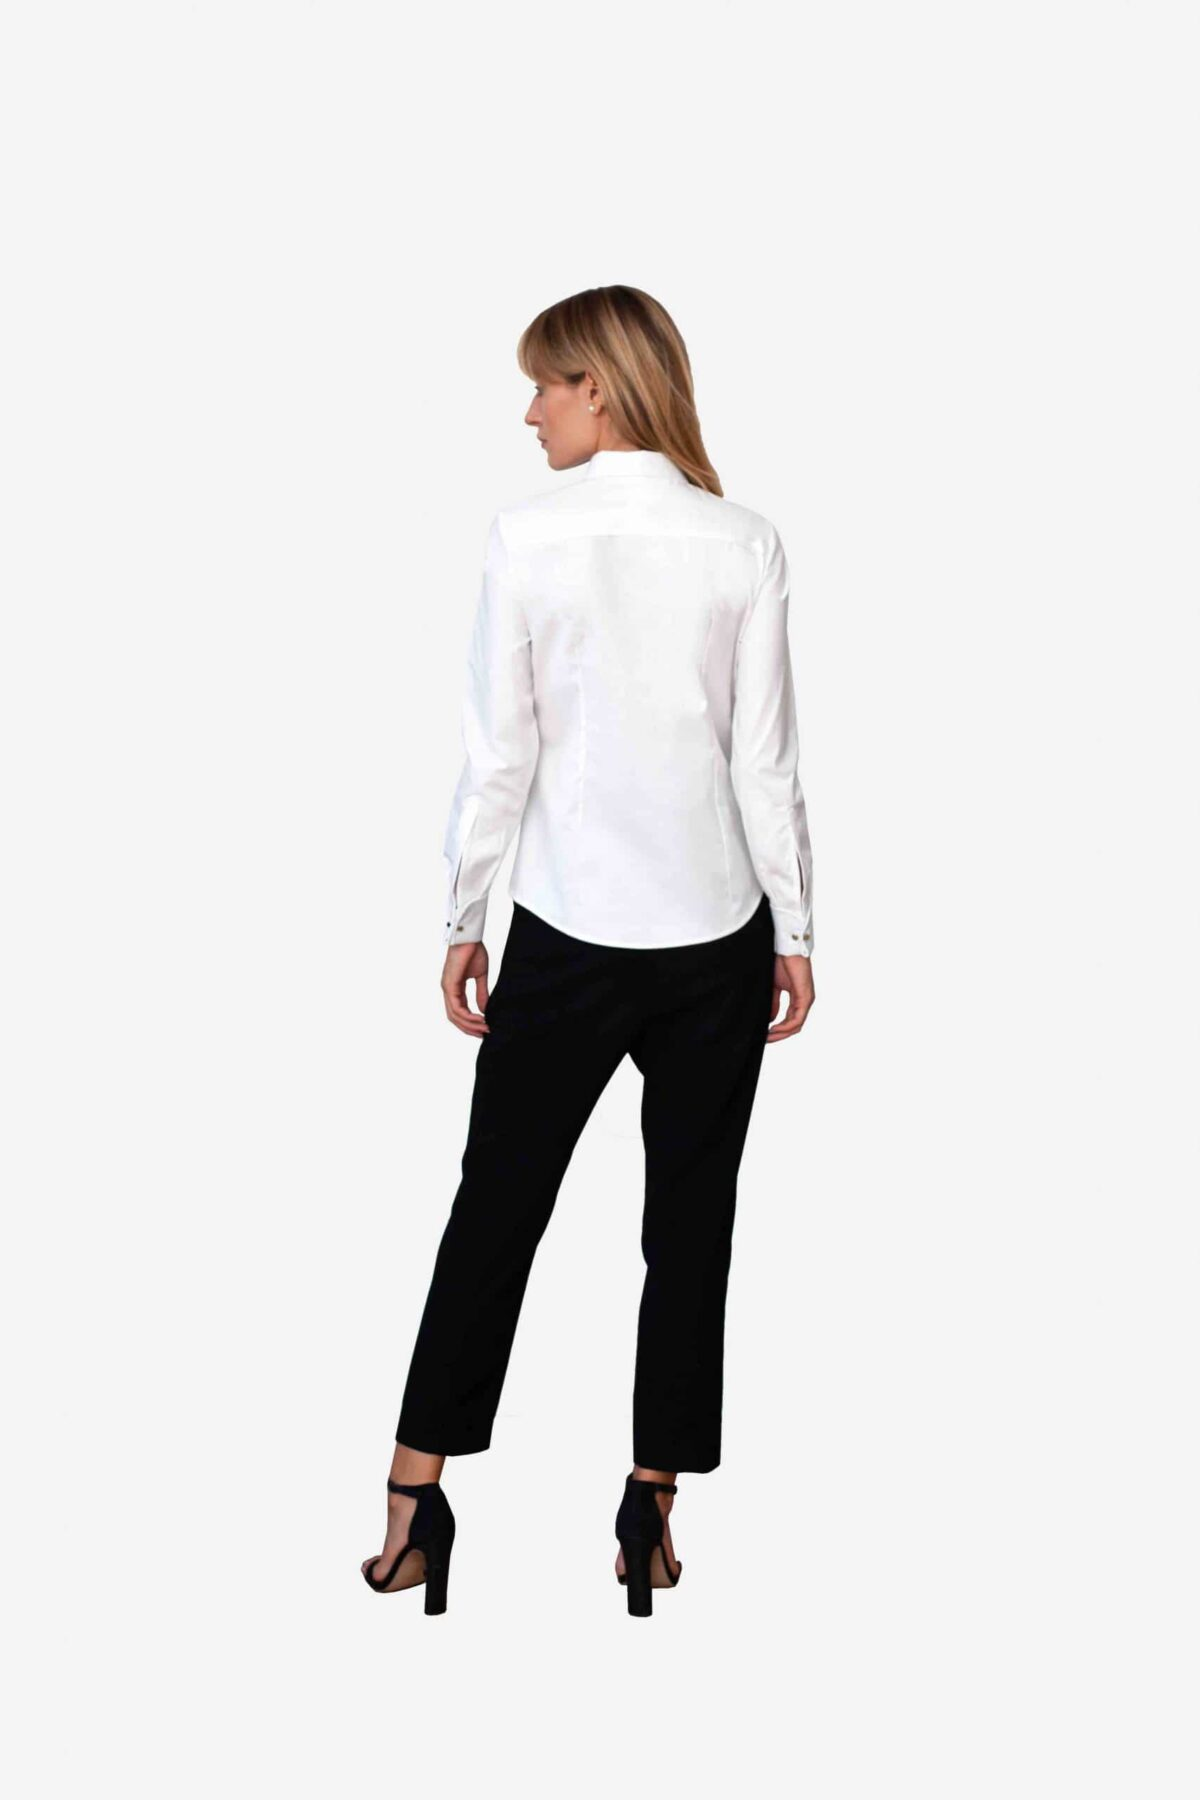 Bluse Michelle von SANOGE - elegante Business Bluse in weiß mit New York Kent Kragen. Pflegeleicht, easy care.